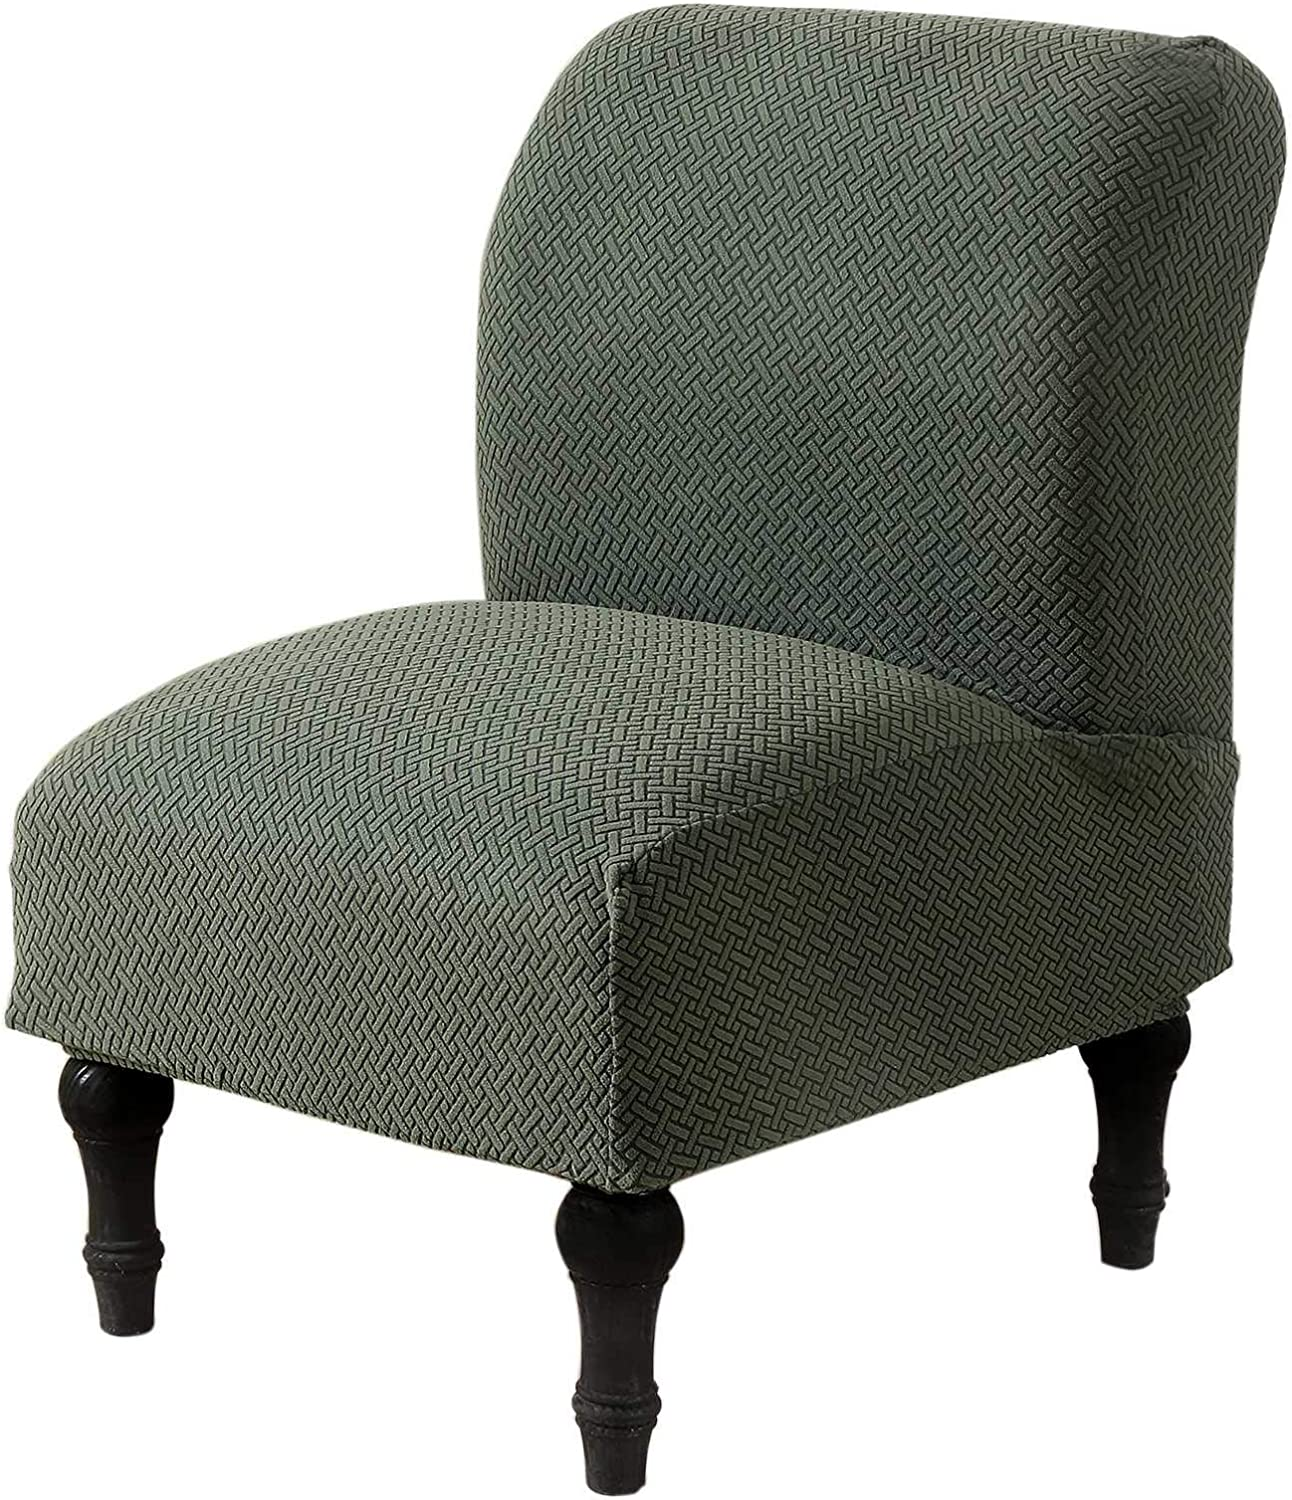 Dingtuo Armless Chair Slipcovers Stretch Furniture Protector Covers Sofa Covers Contemporary Accent Chair Slipcover Green